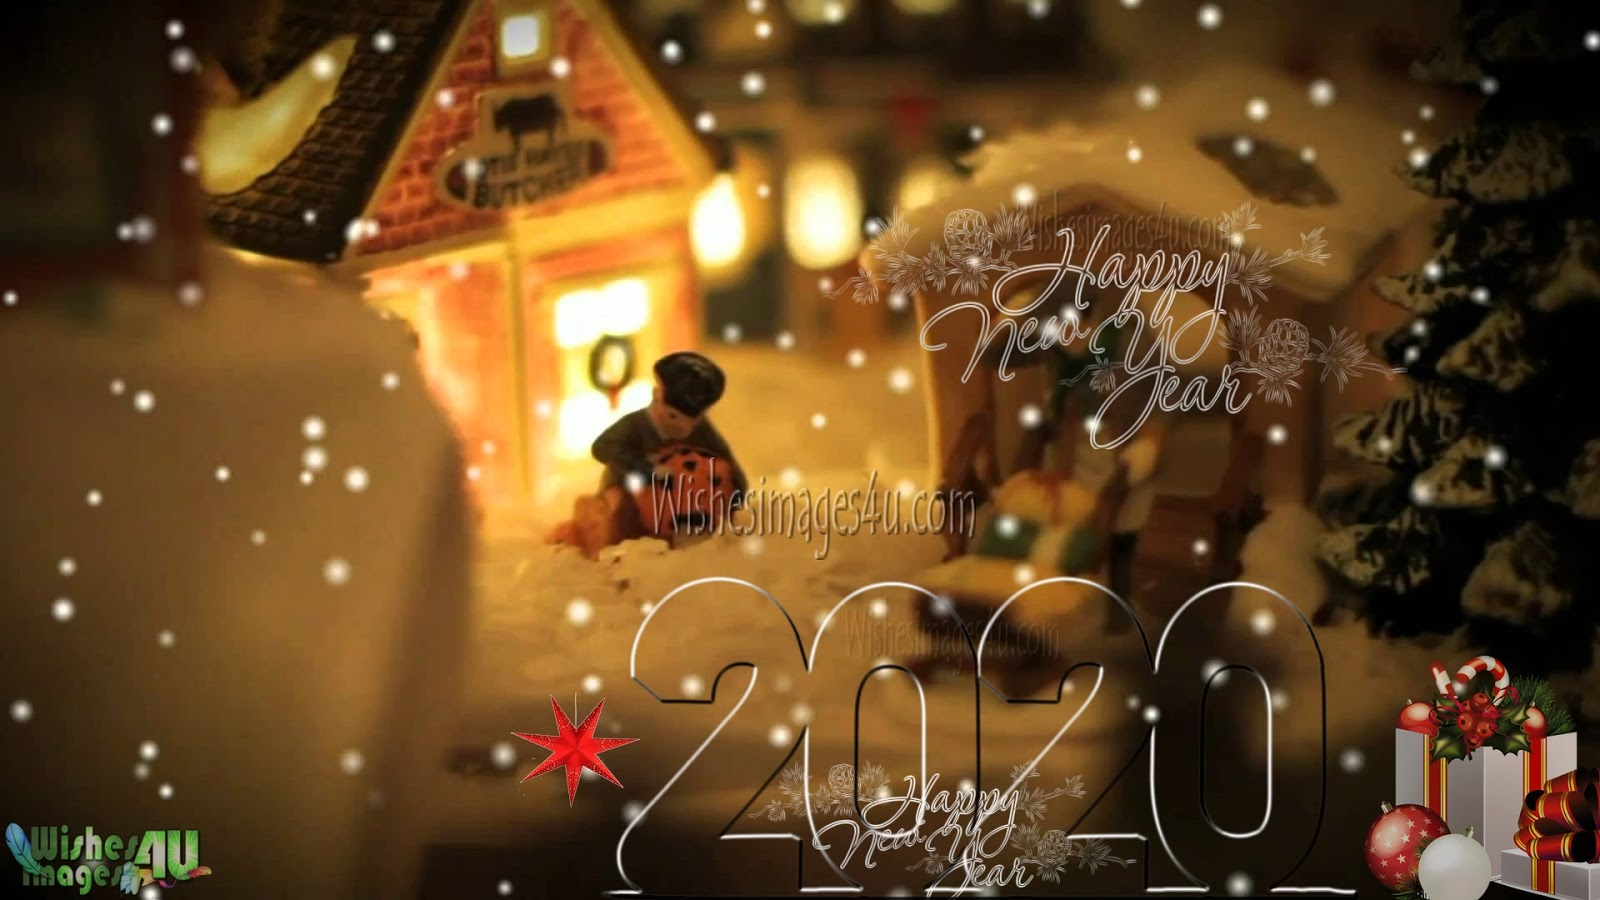 Happy New Year 2020 Ultra Hd 4k Wallpapers Download Free